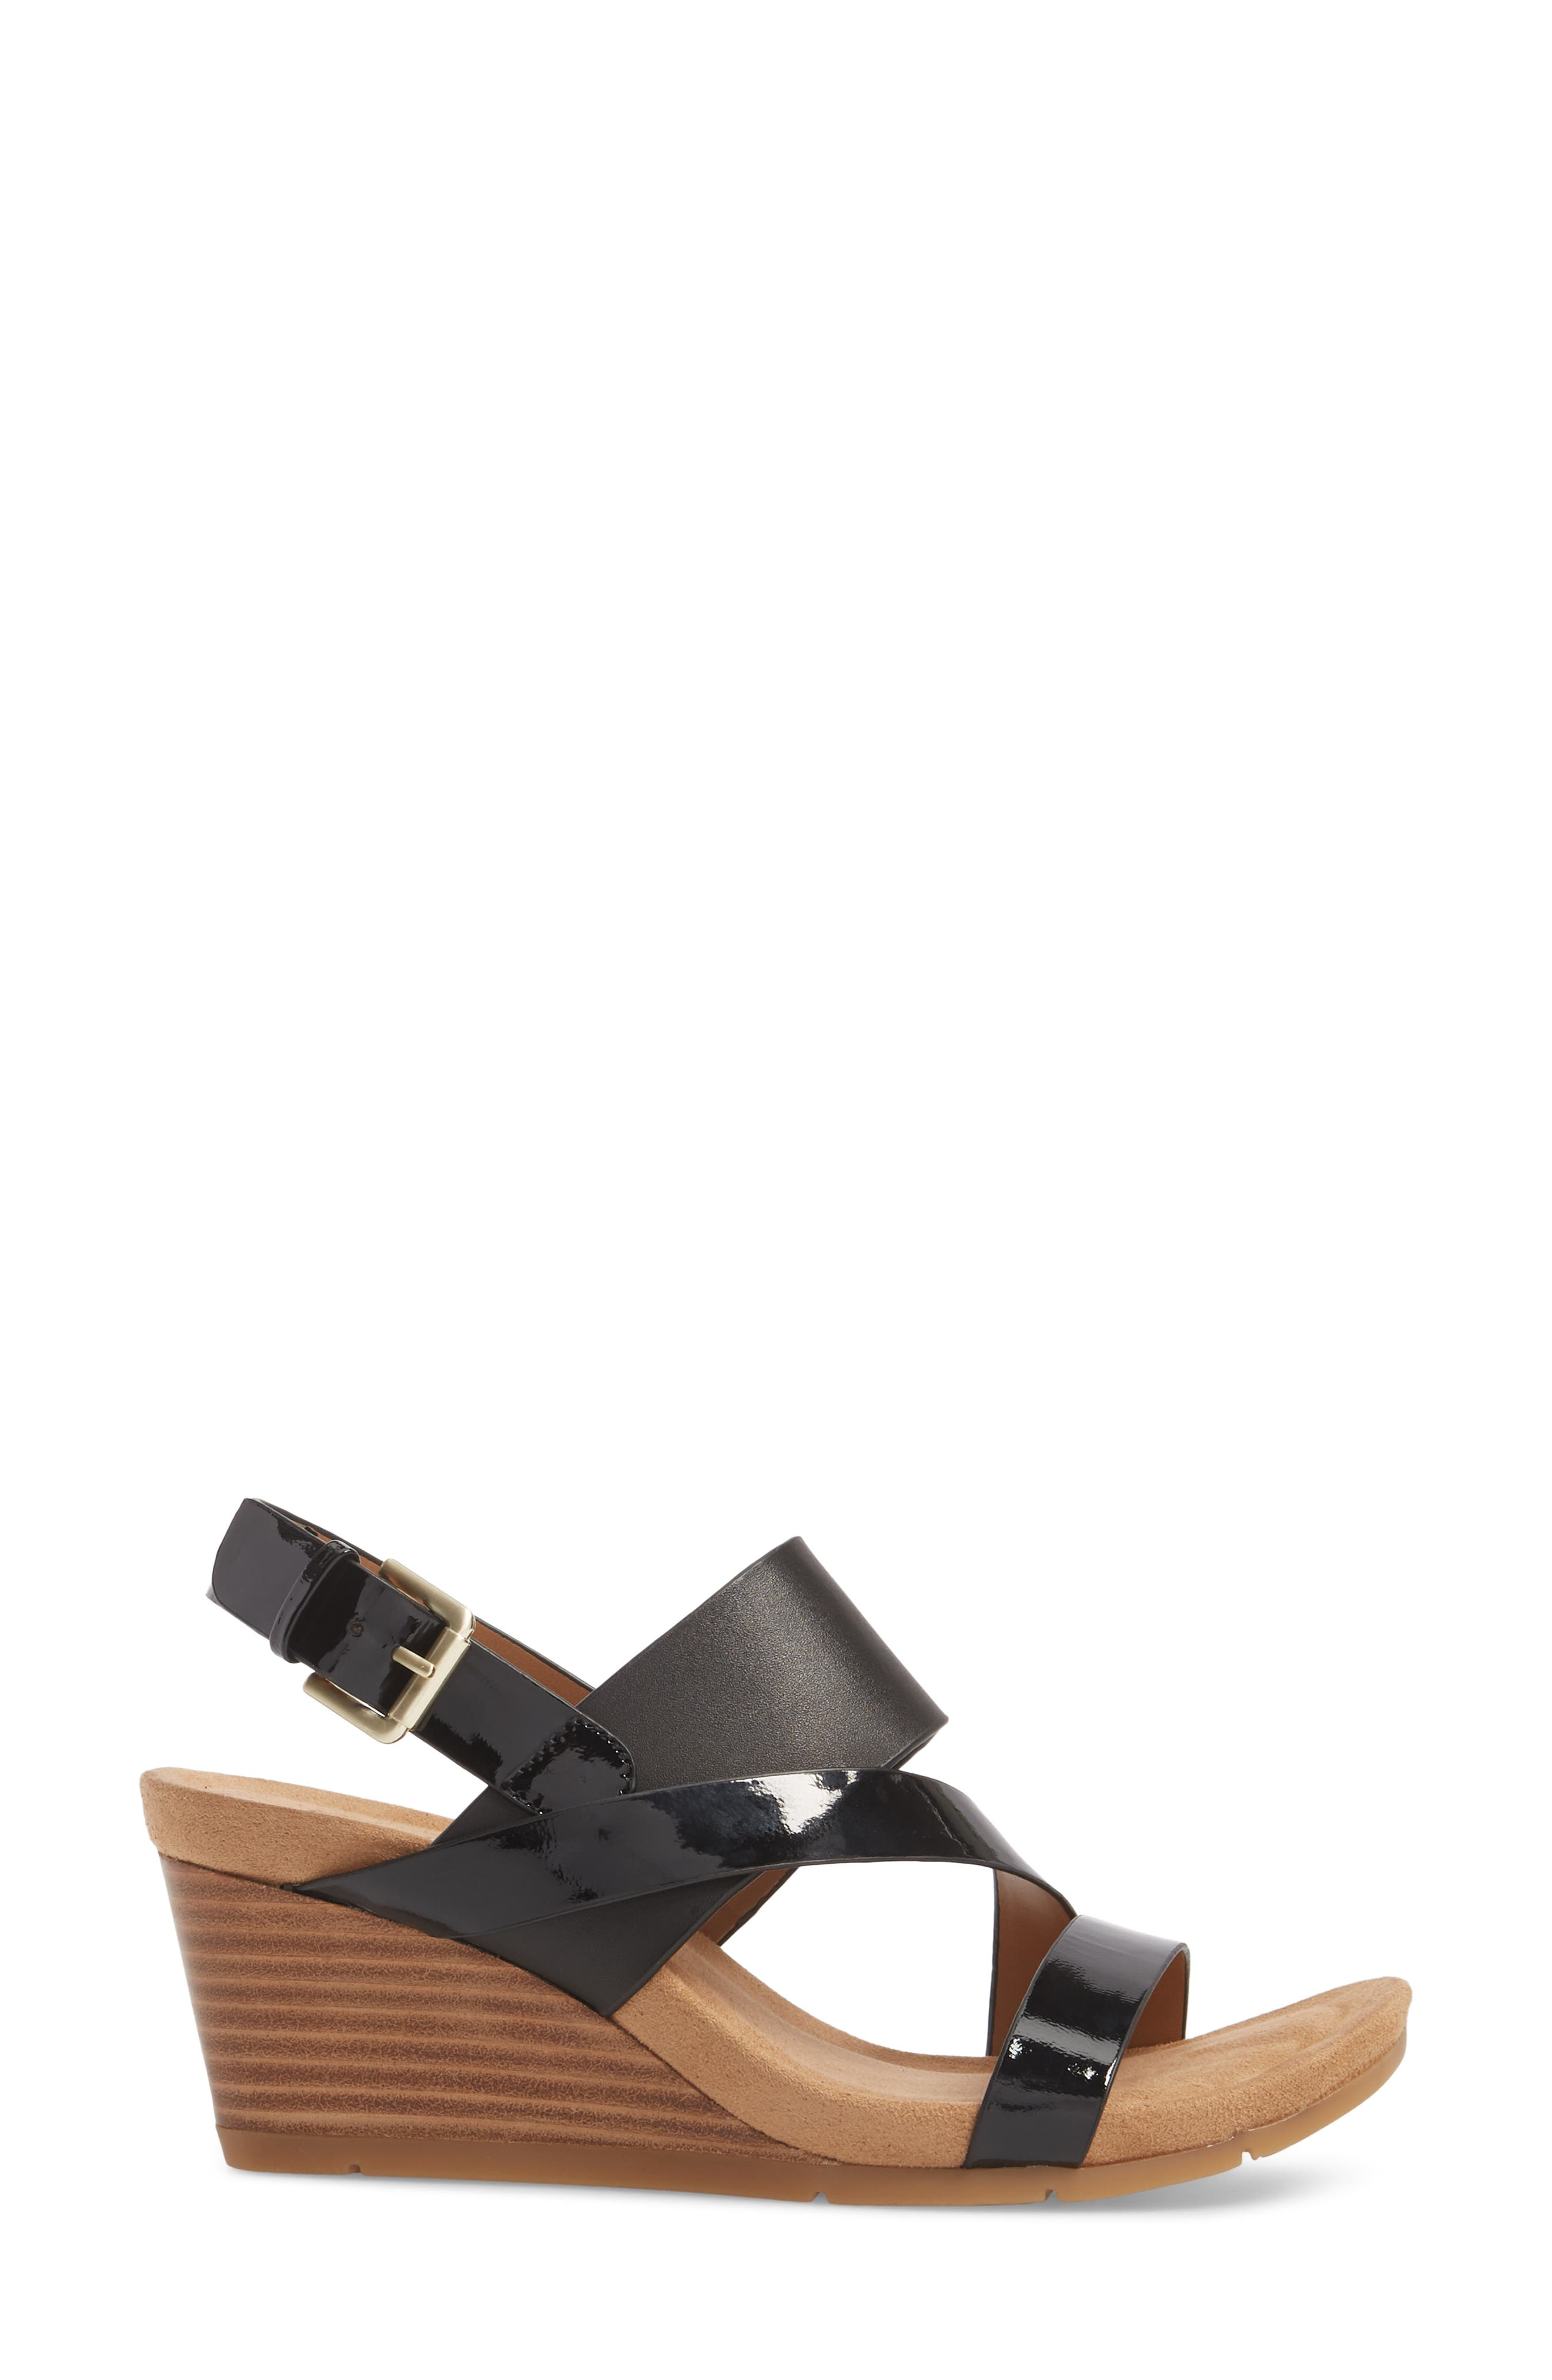 Vail Wedge Sandal,                             Alternate thumbnail 3, color,                             Black Leather